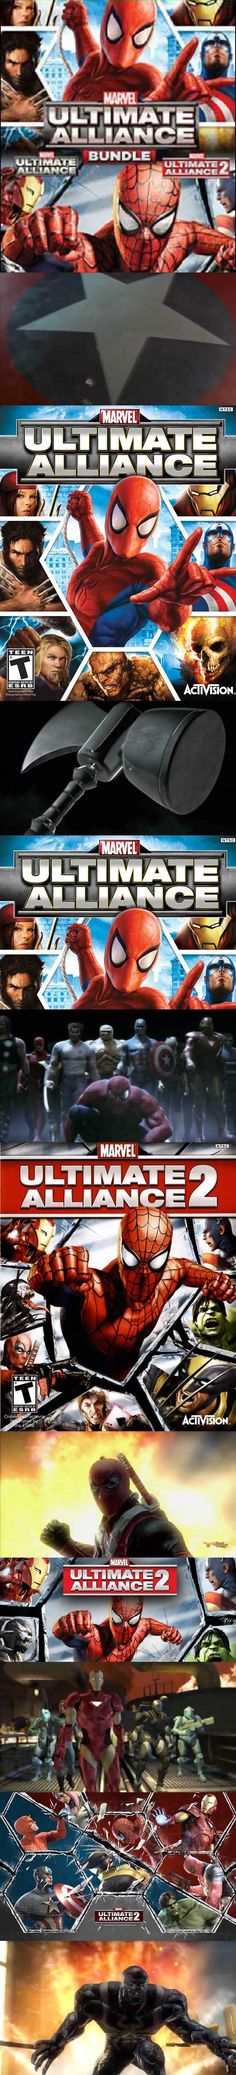 Playstation, Xbox, Marvel Ultimate Alliance, Video Games, Nintendo, Action, Superhero, Collection, Videogames